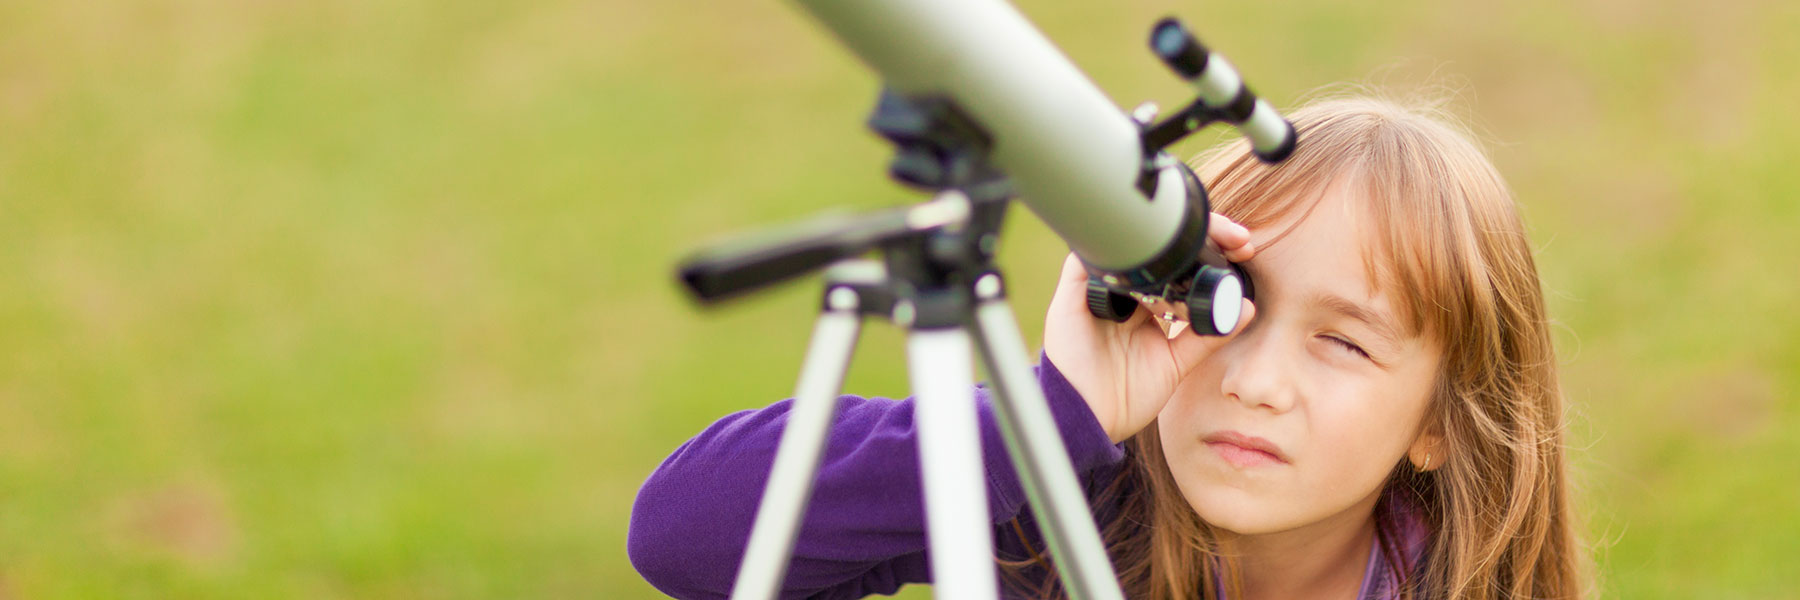 young girl looking through telescope